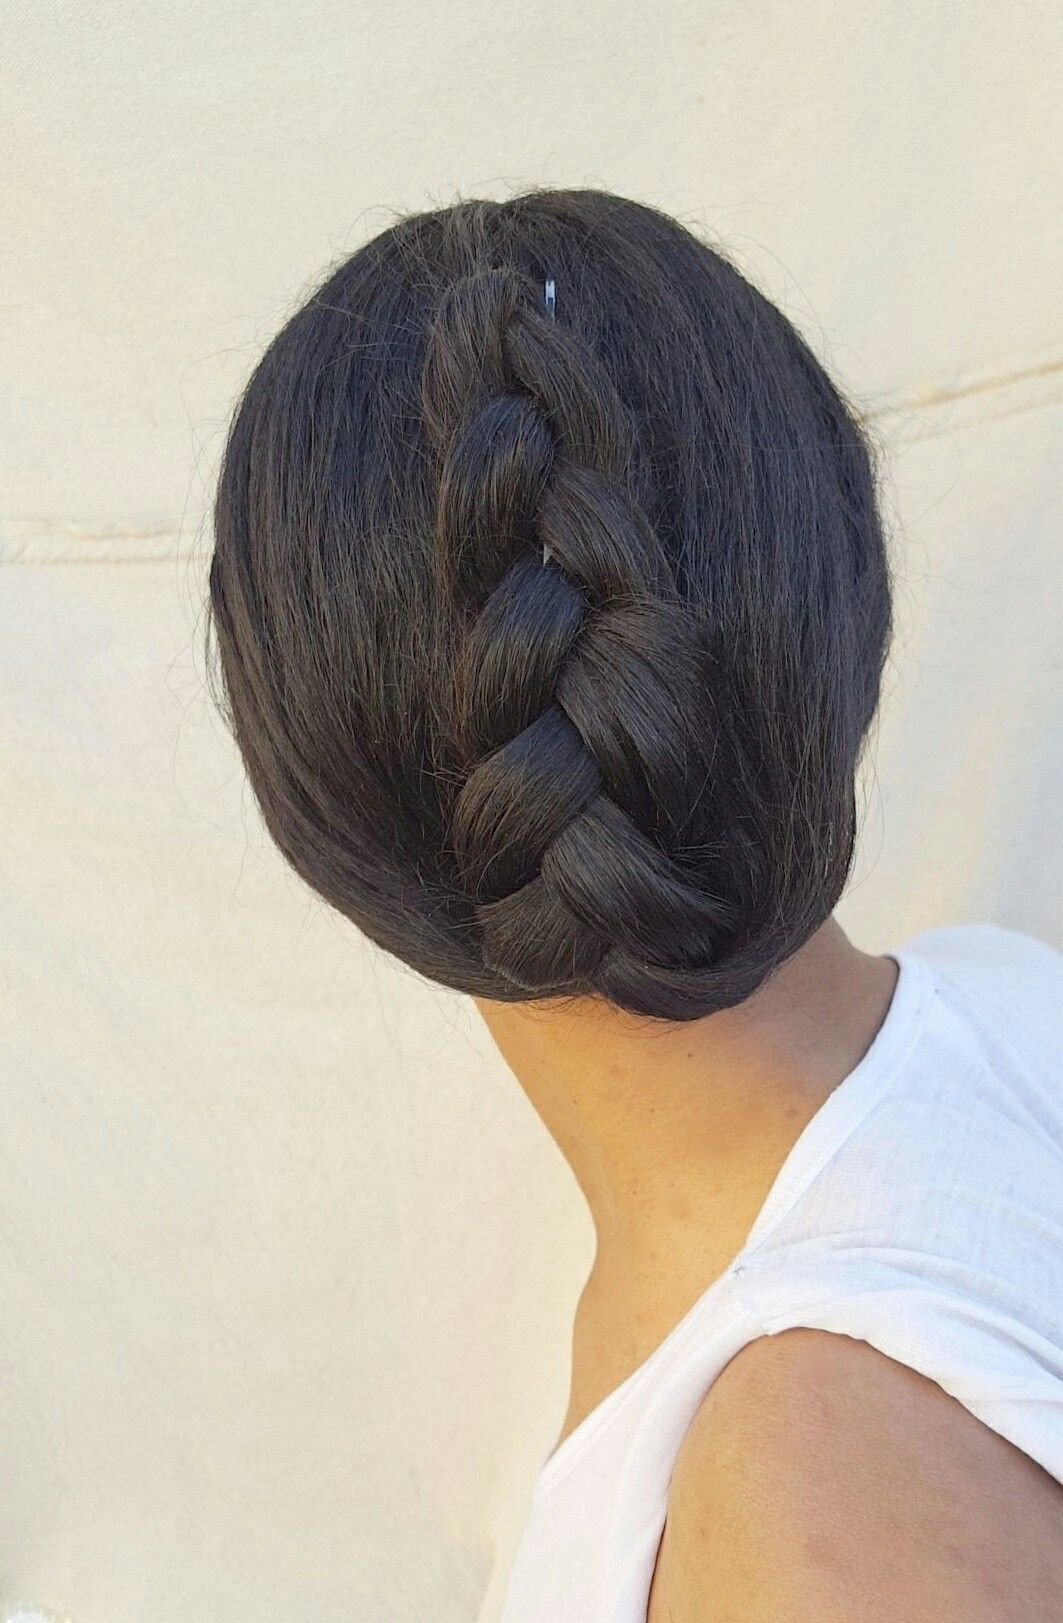 Pin By Nino Luxy On Beautiful Hairstyle In 2020 Braided Hairstyles Braids For Long Hair Cool Hairstyles